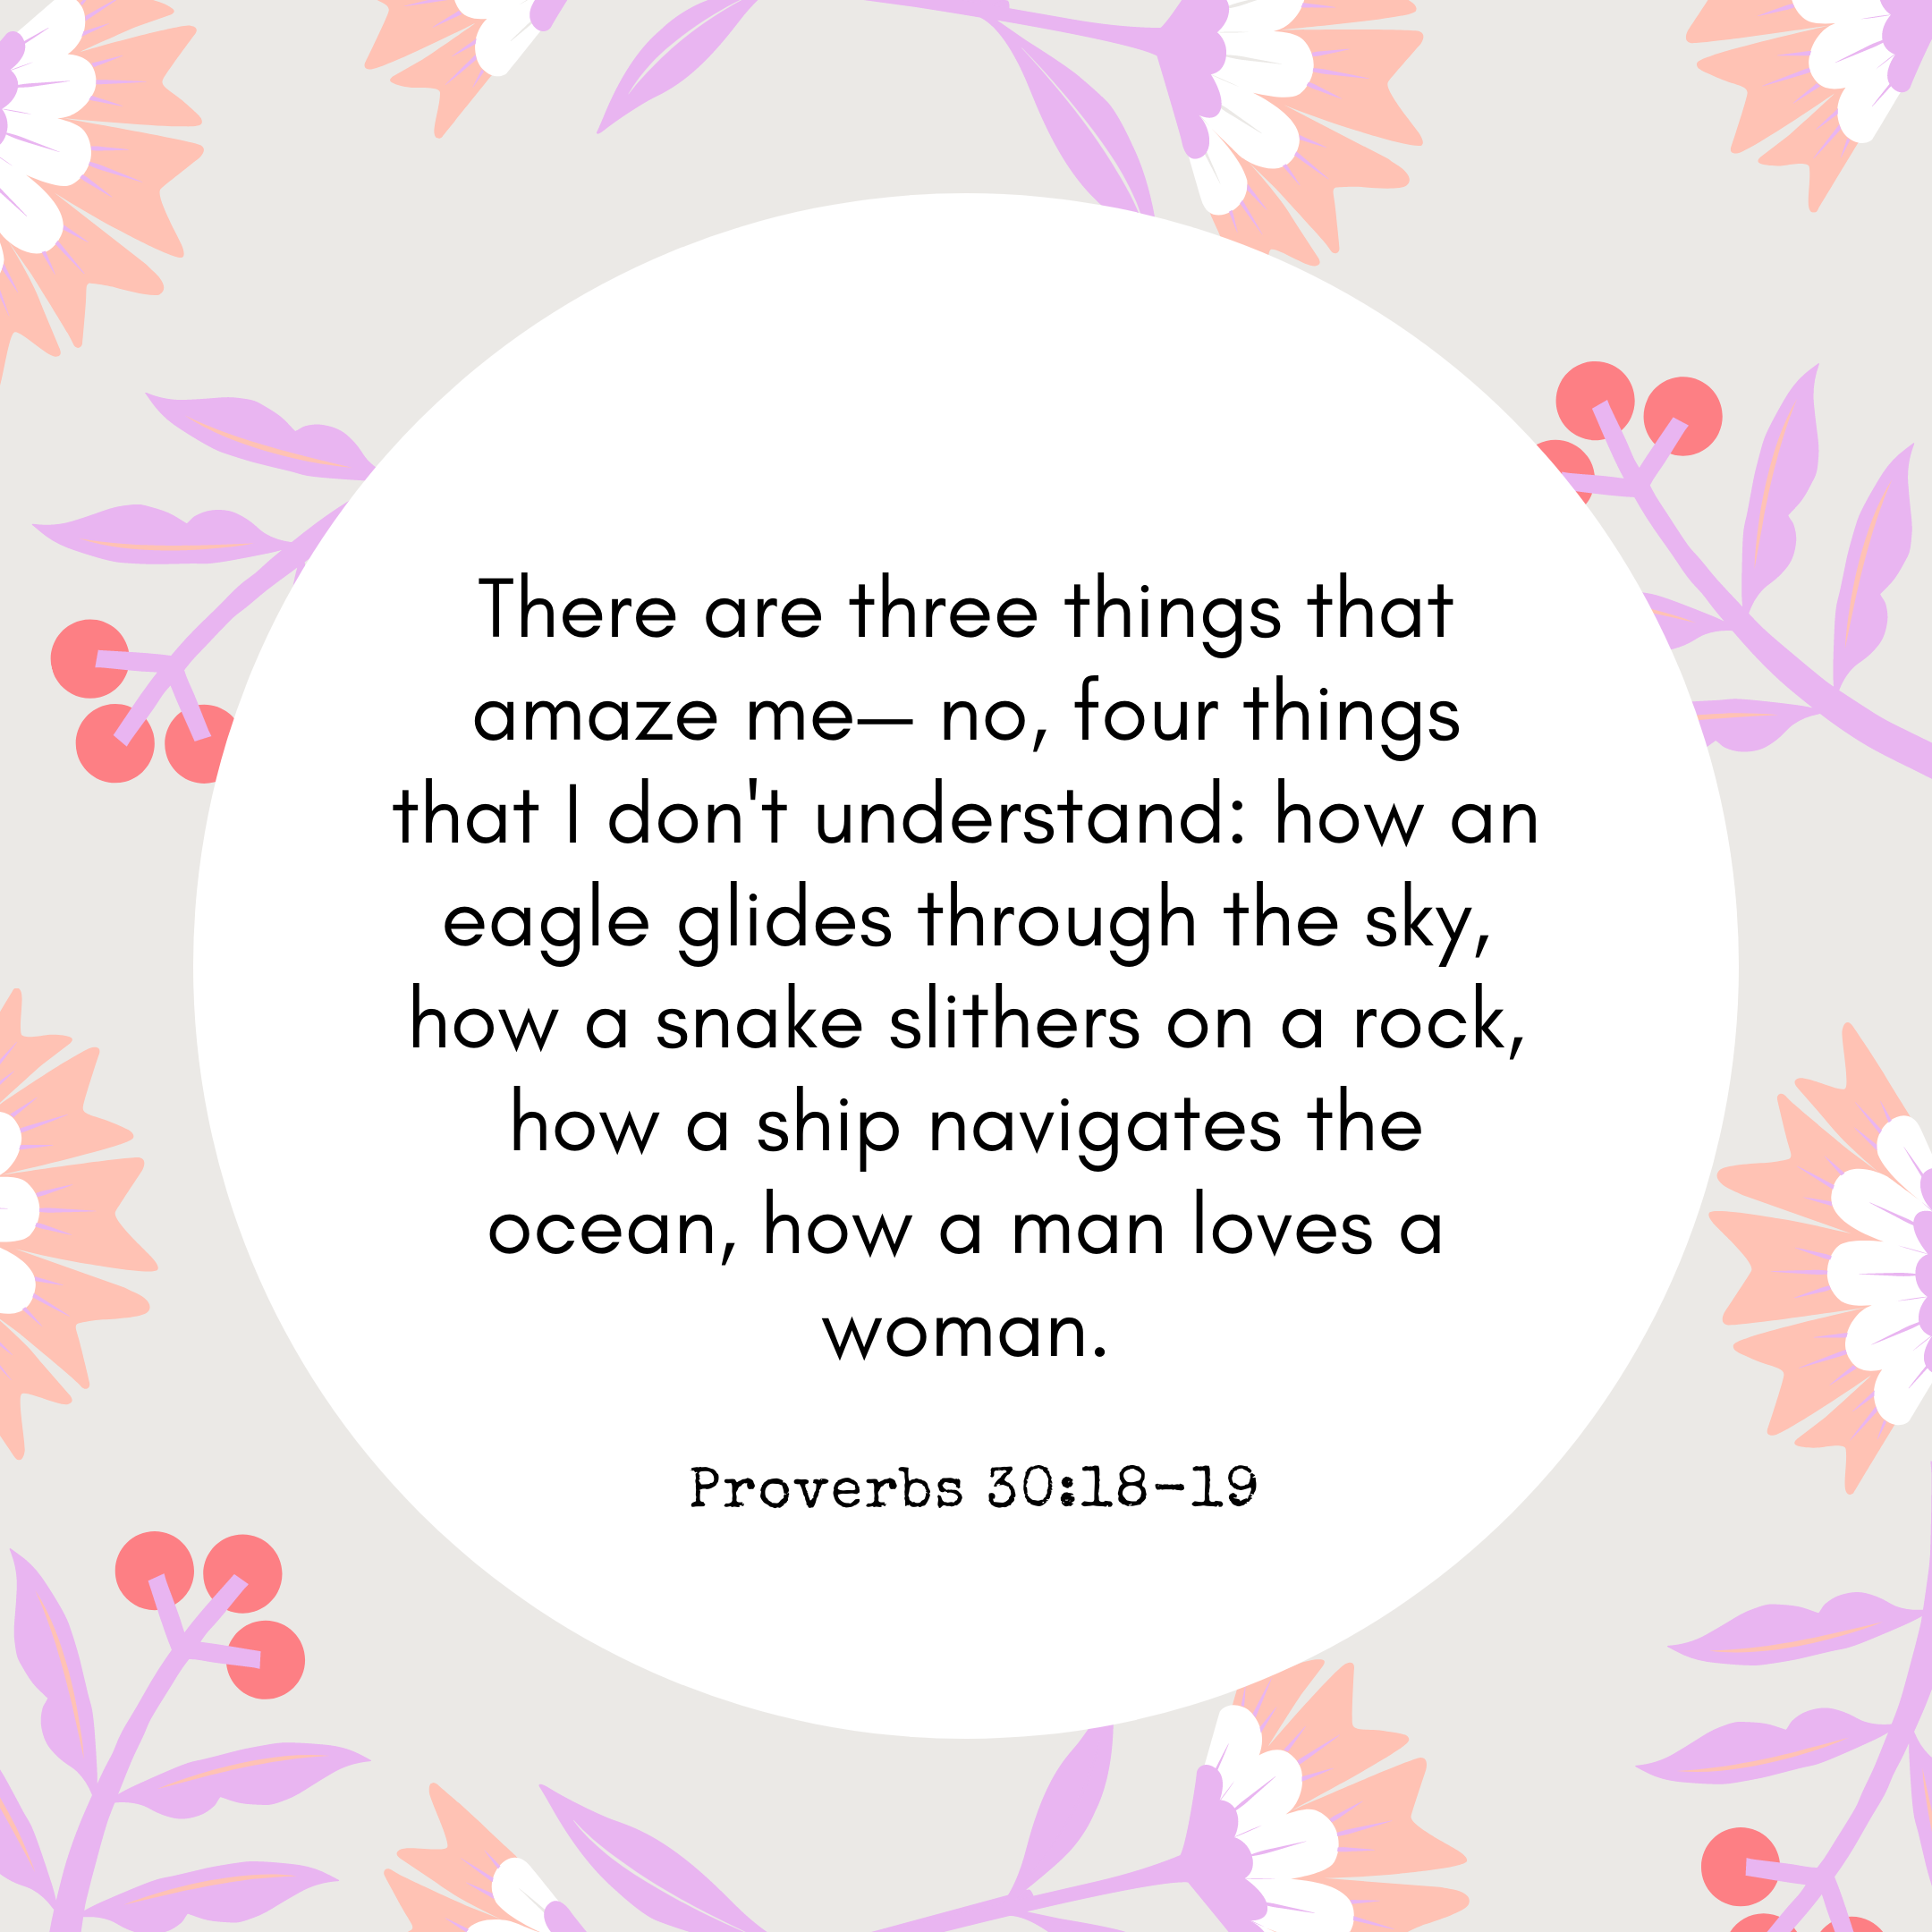 Proverbs 30:18-19 There are three things that amaze me— no, four things that I don't understand: how an eagle glides through the sky, how a snake slithers on a rock, how a ship navigates the ocean, how a man loves a woman.